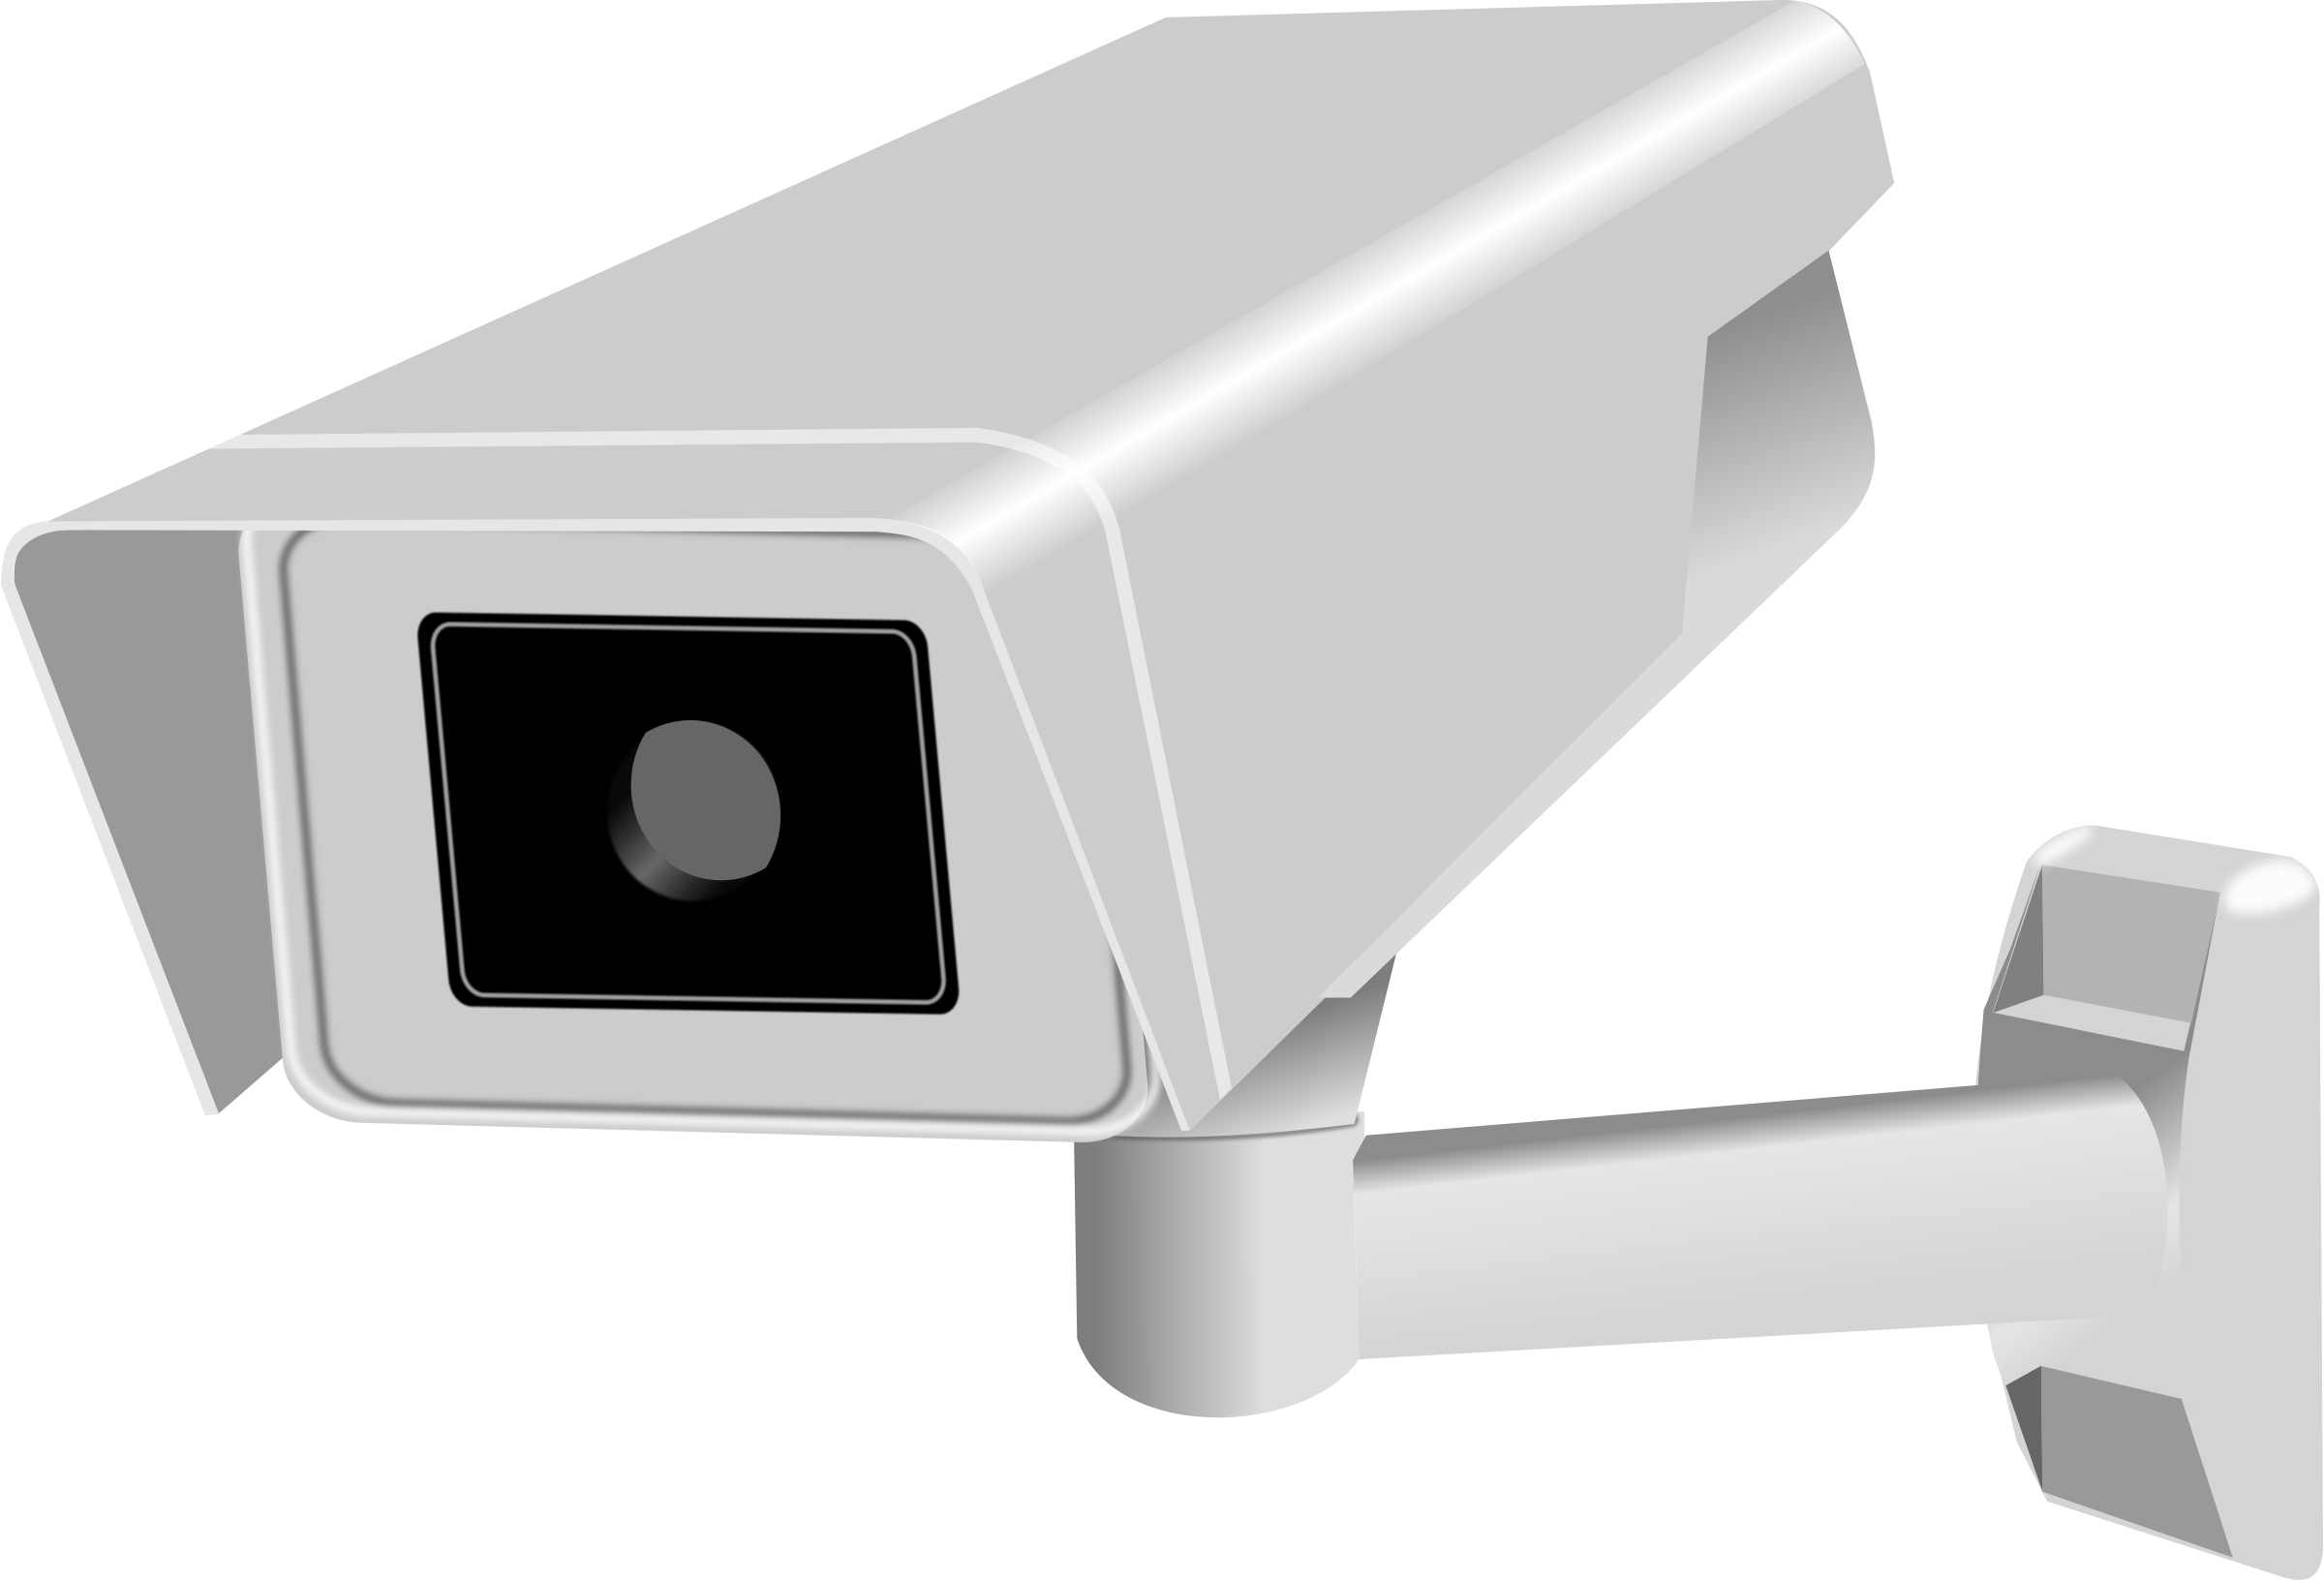 Security camera clipart download svg freeuse stock Closed-circuit television Surveillance Clip art - Security ... svg freeuse stock